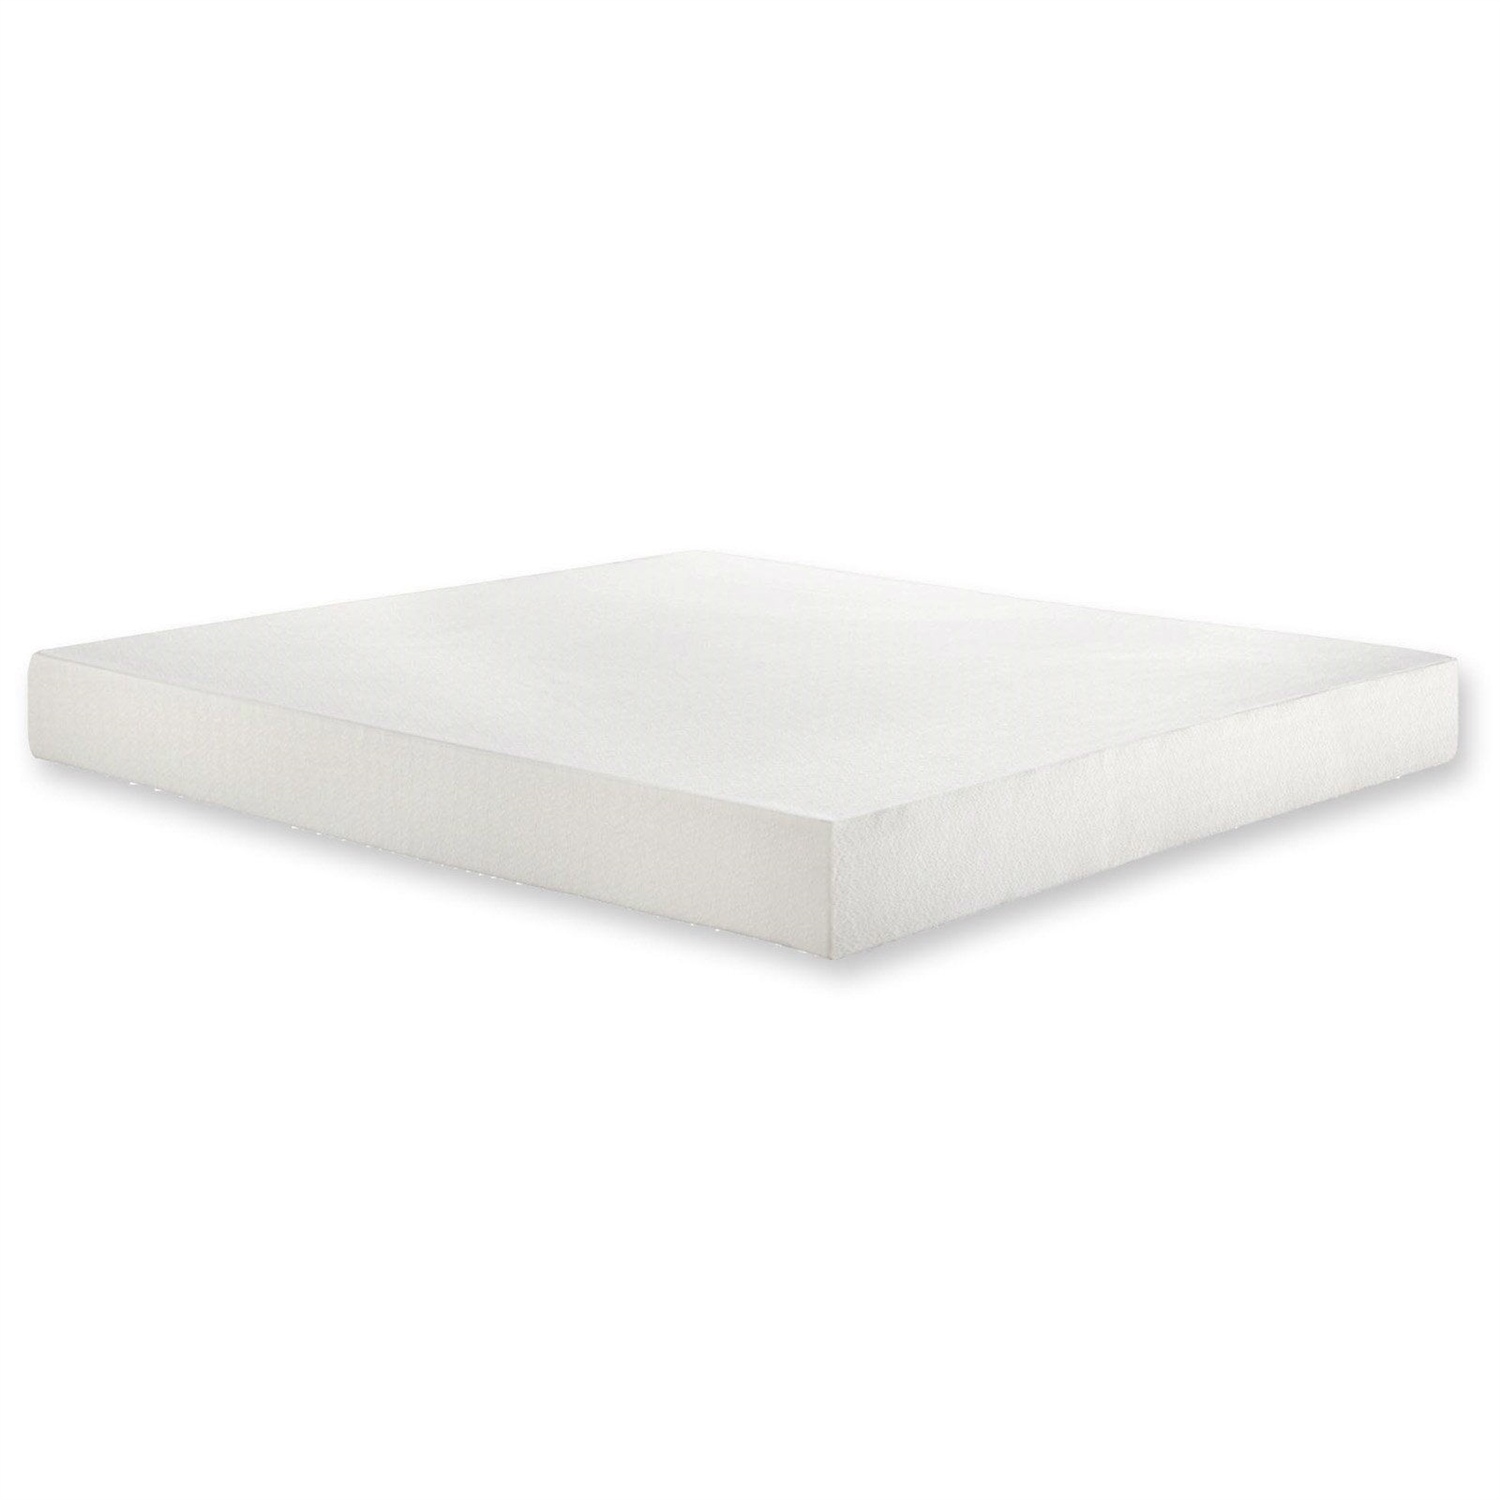 King Size 6 Inch Memory Foam Mattress With Soft Knit Fabric Cover